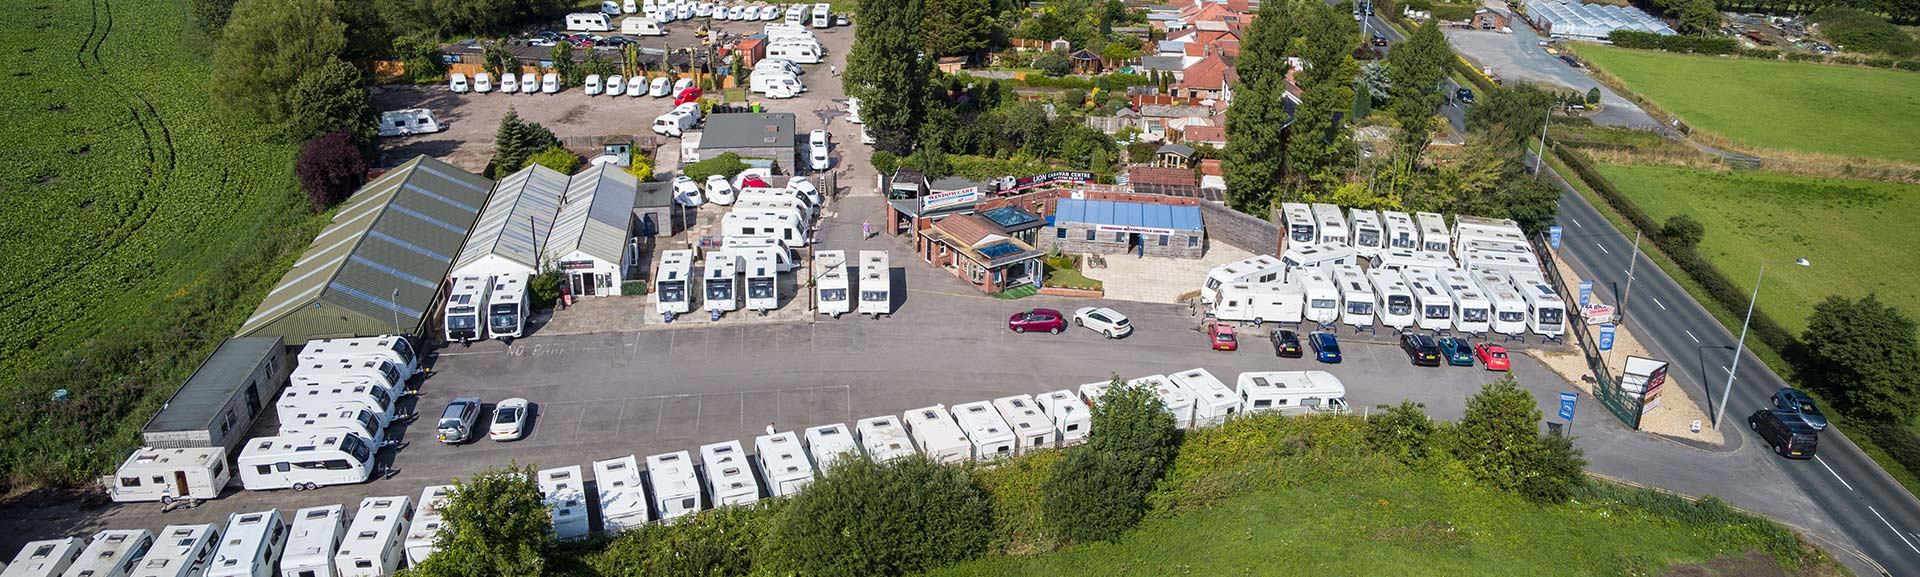 Red Lion Caravans